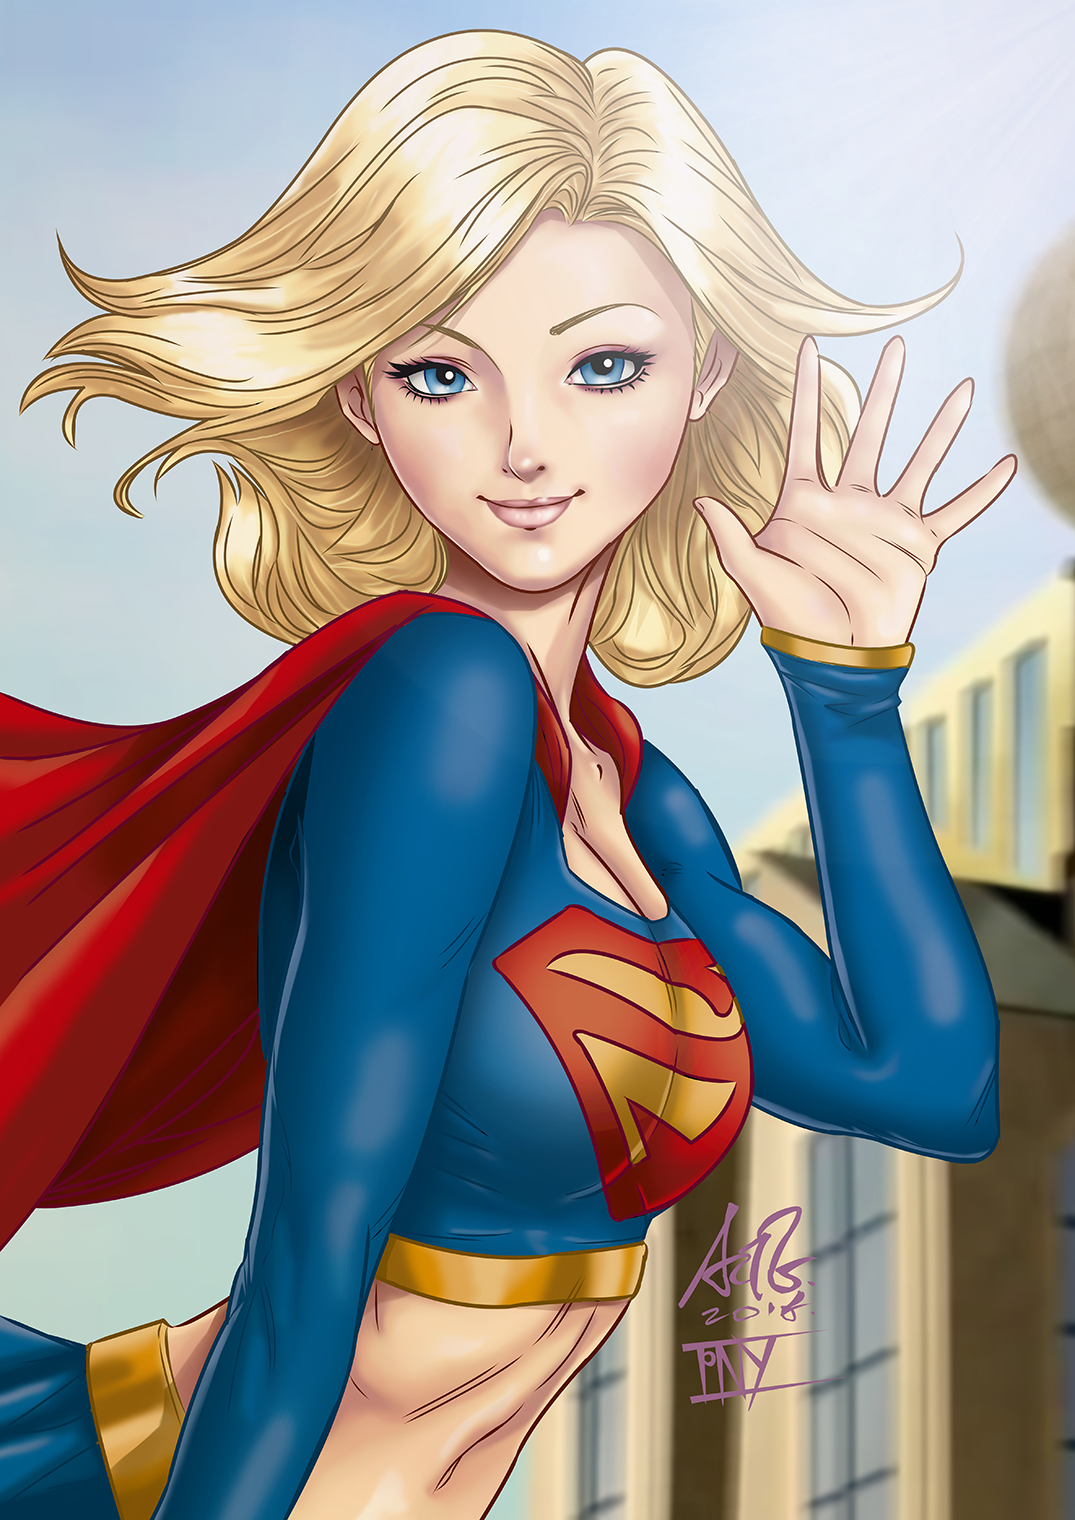 Supergirl TV Pin-up by tiangtam on DeviantArt